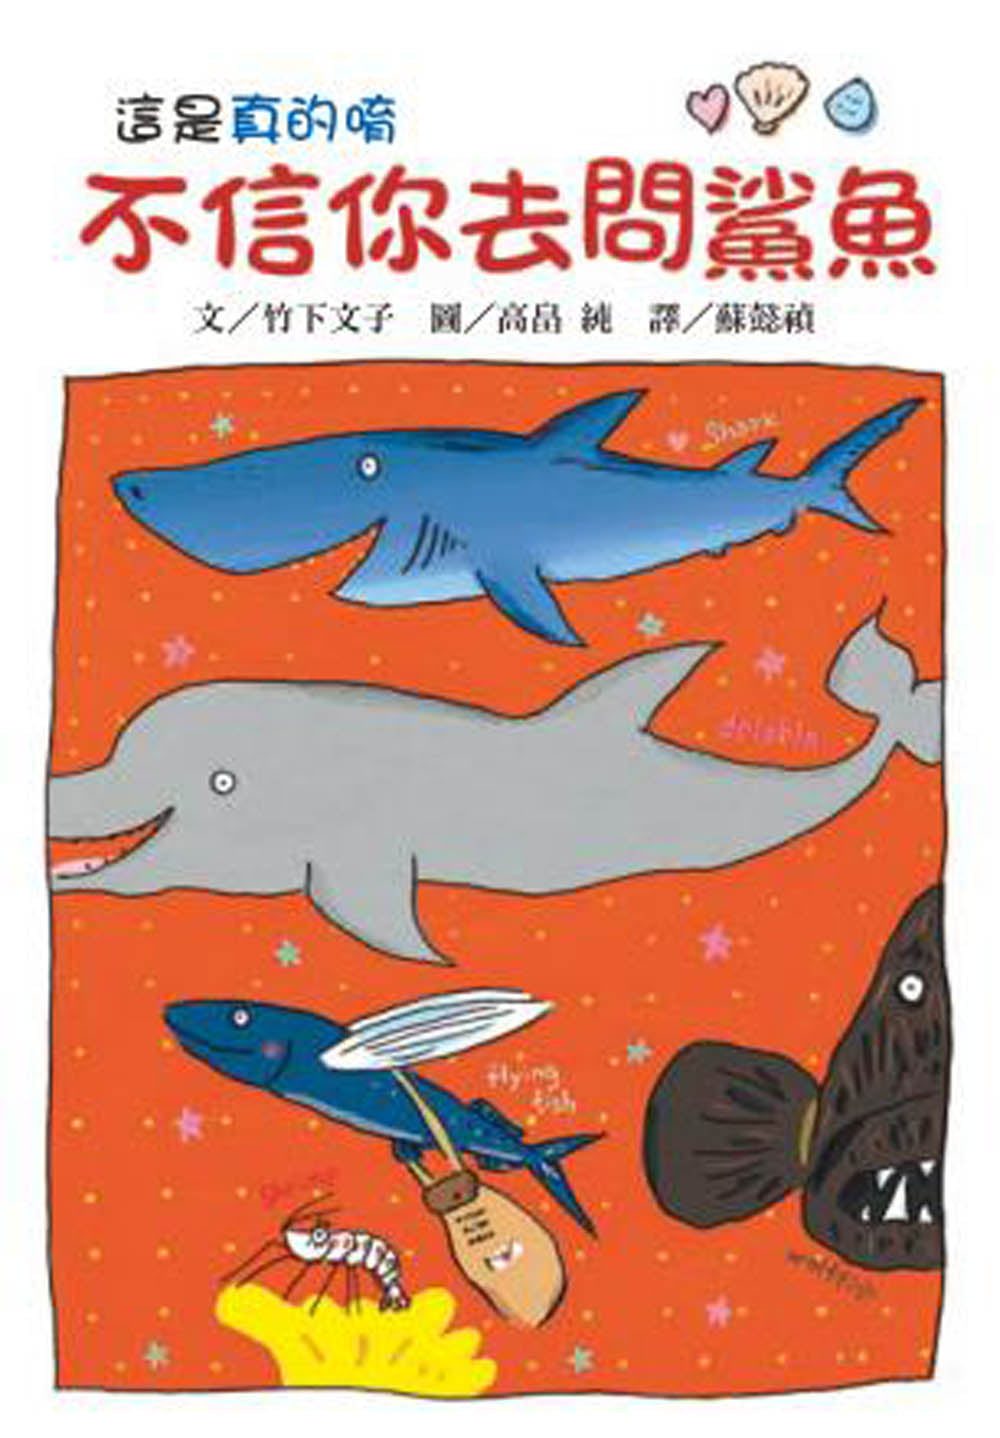 Don't Believe Me? Ask the Shark! • 不信你去問鯊魚